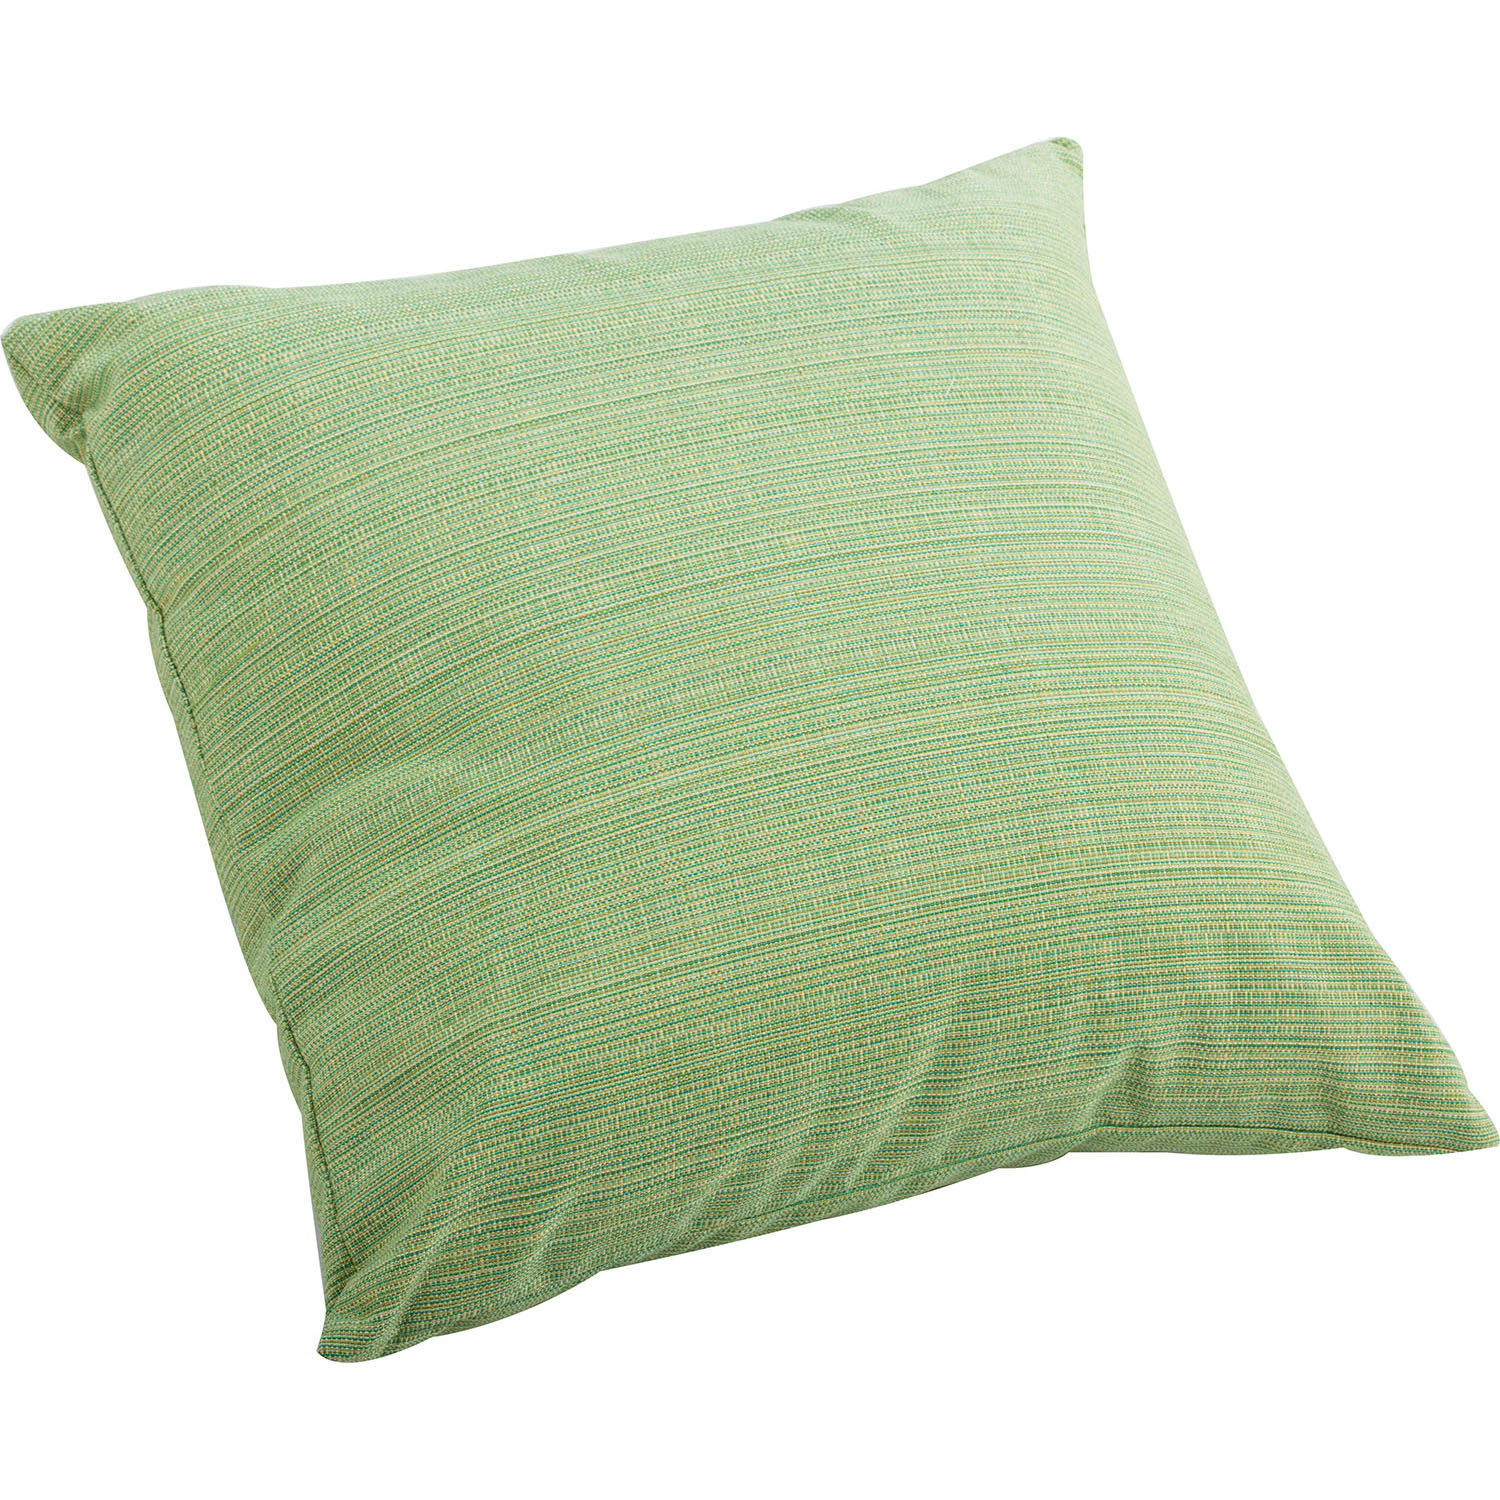 Outdoor Parrot Pillow Lime Mix Thread Pattern: Size Options